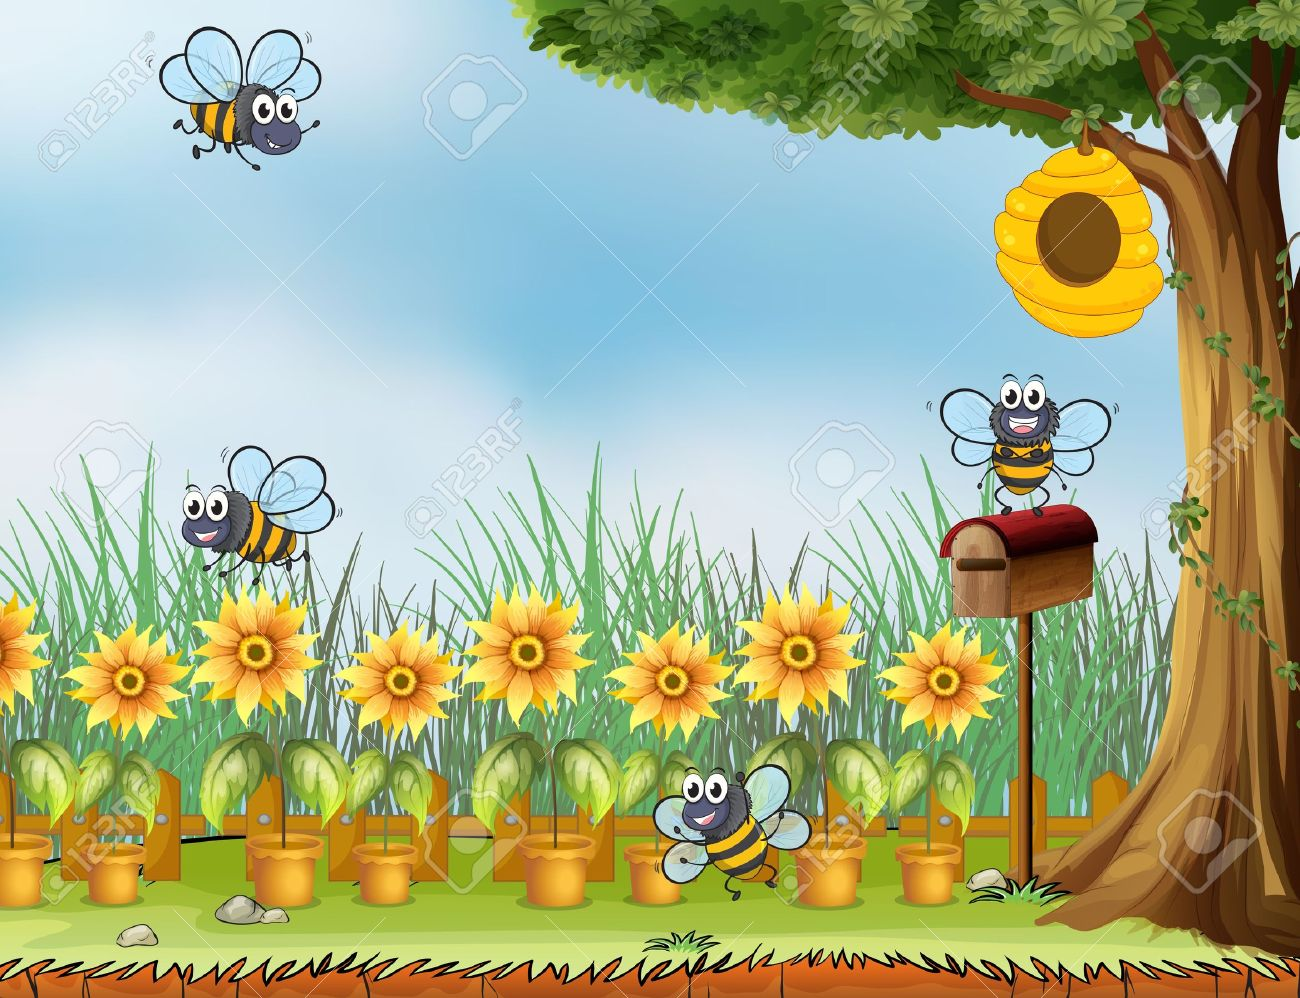 Illustration Of Four Bees In The Garden Royalty Free Cliparts ...